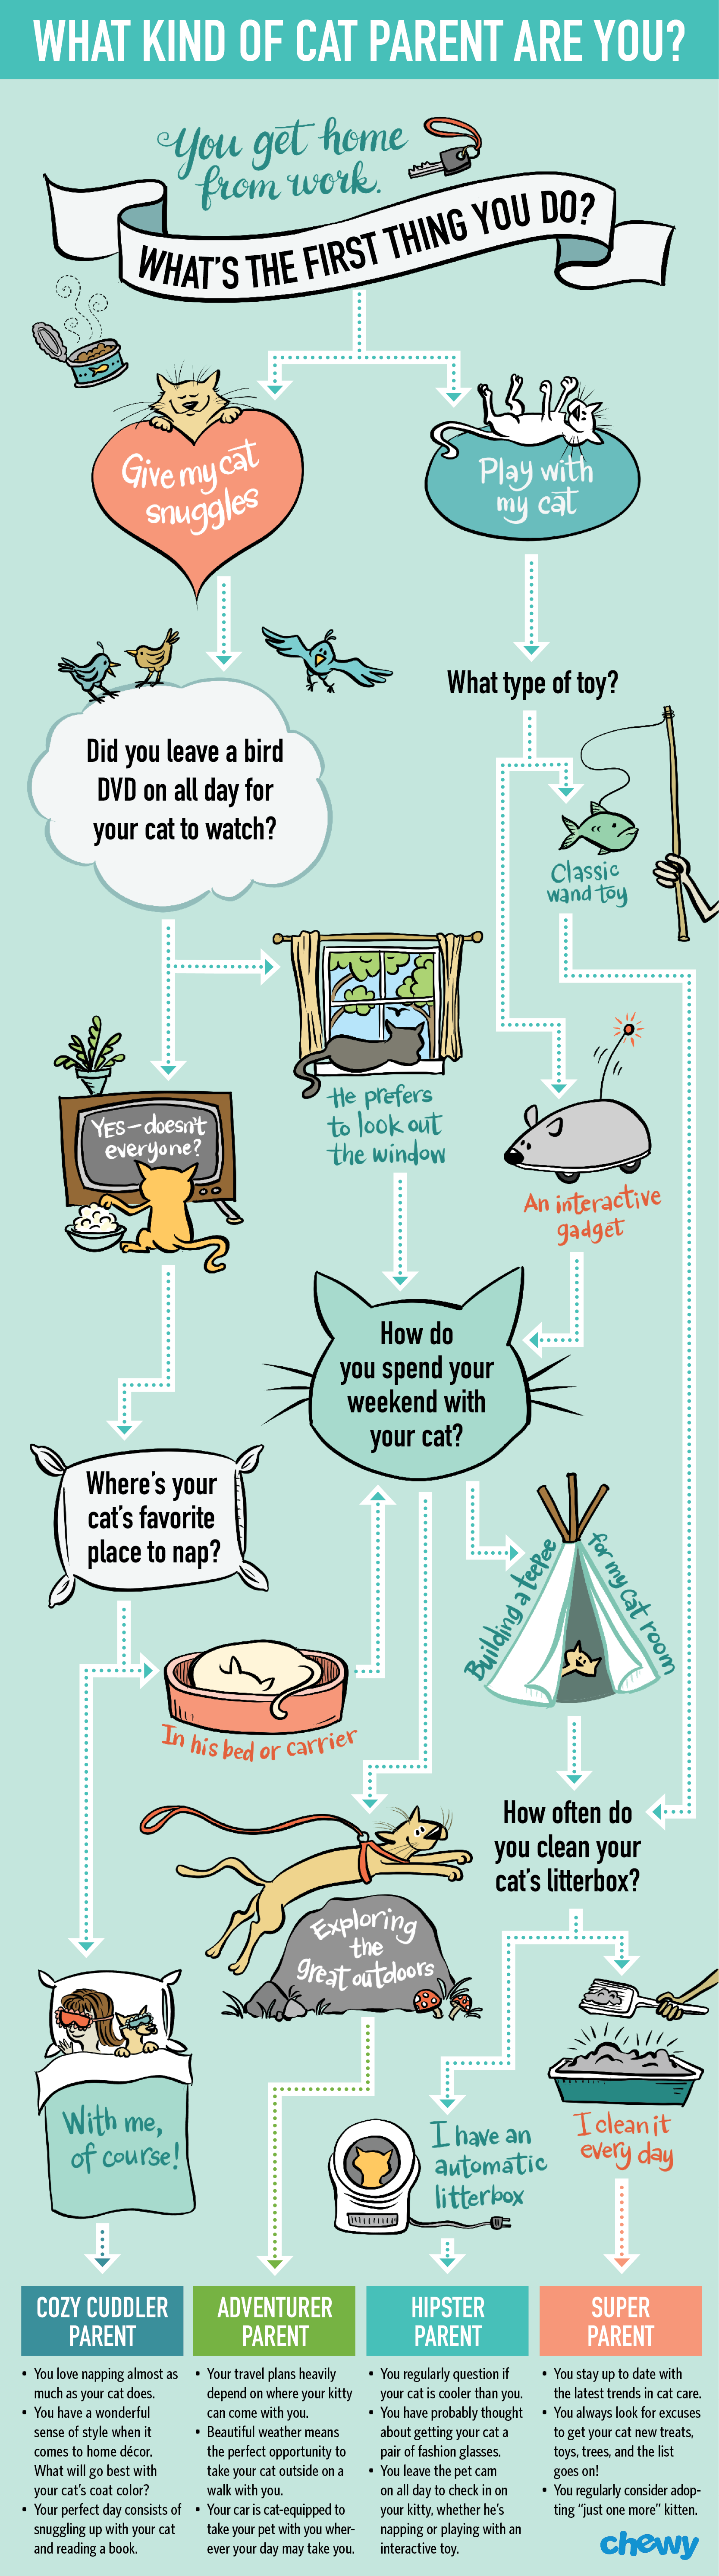 Infographic illustration & design for chewy.com